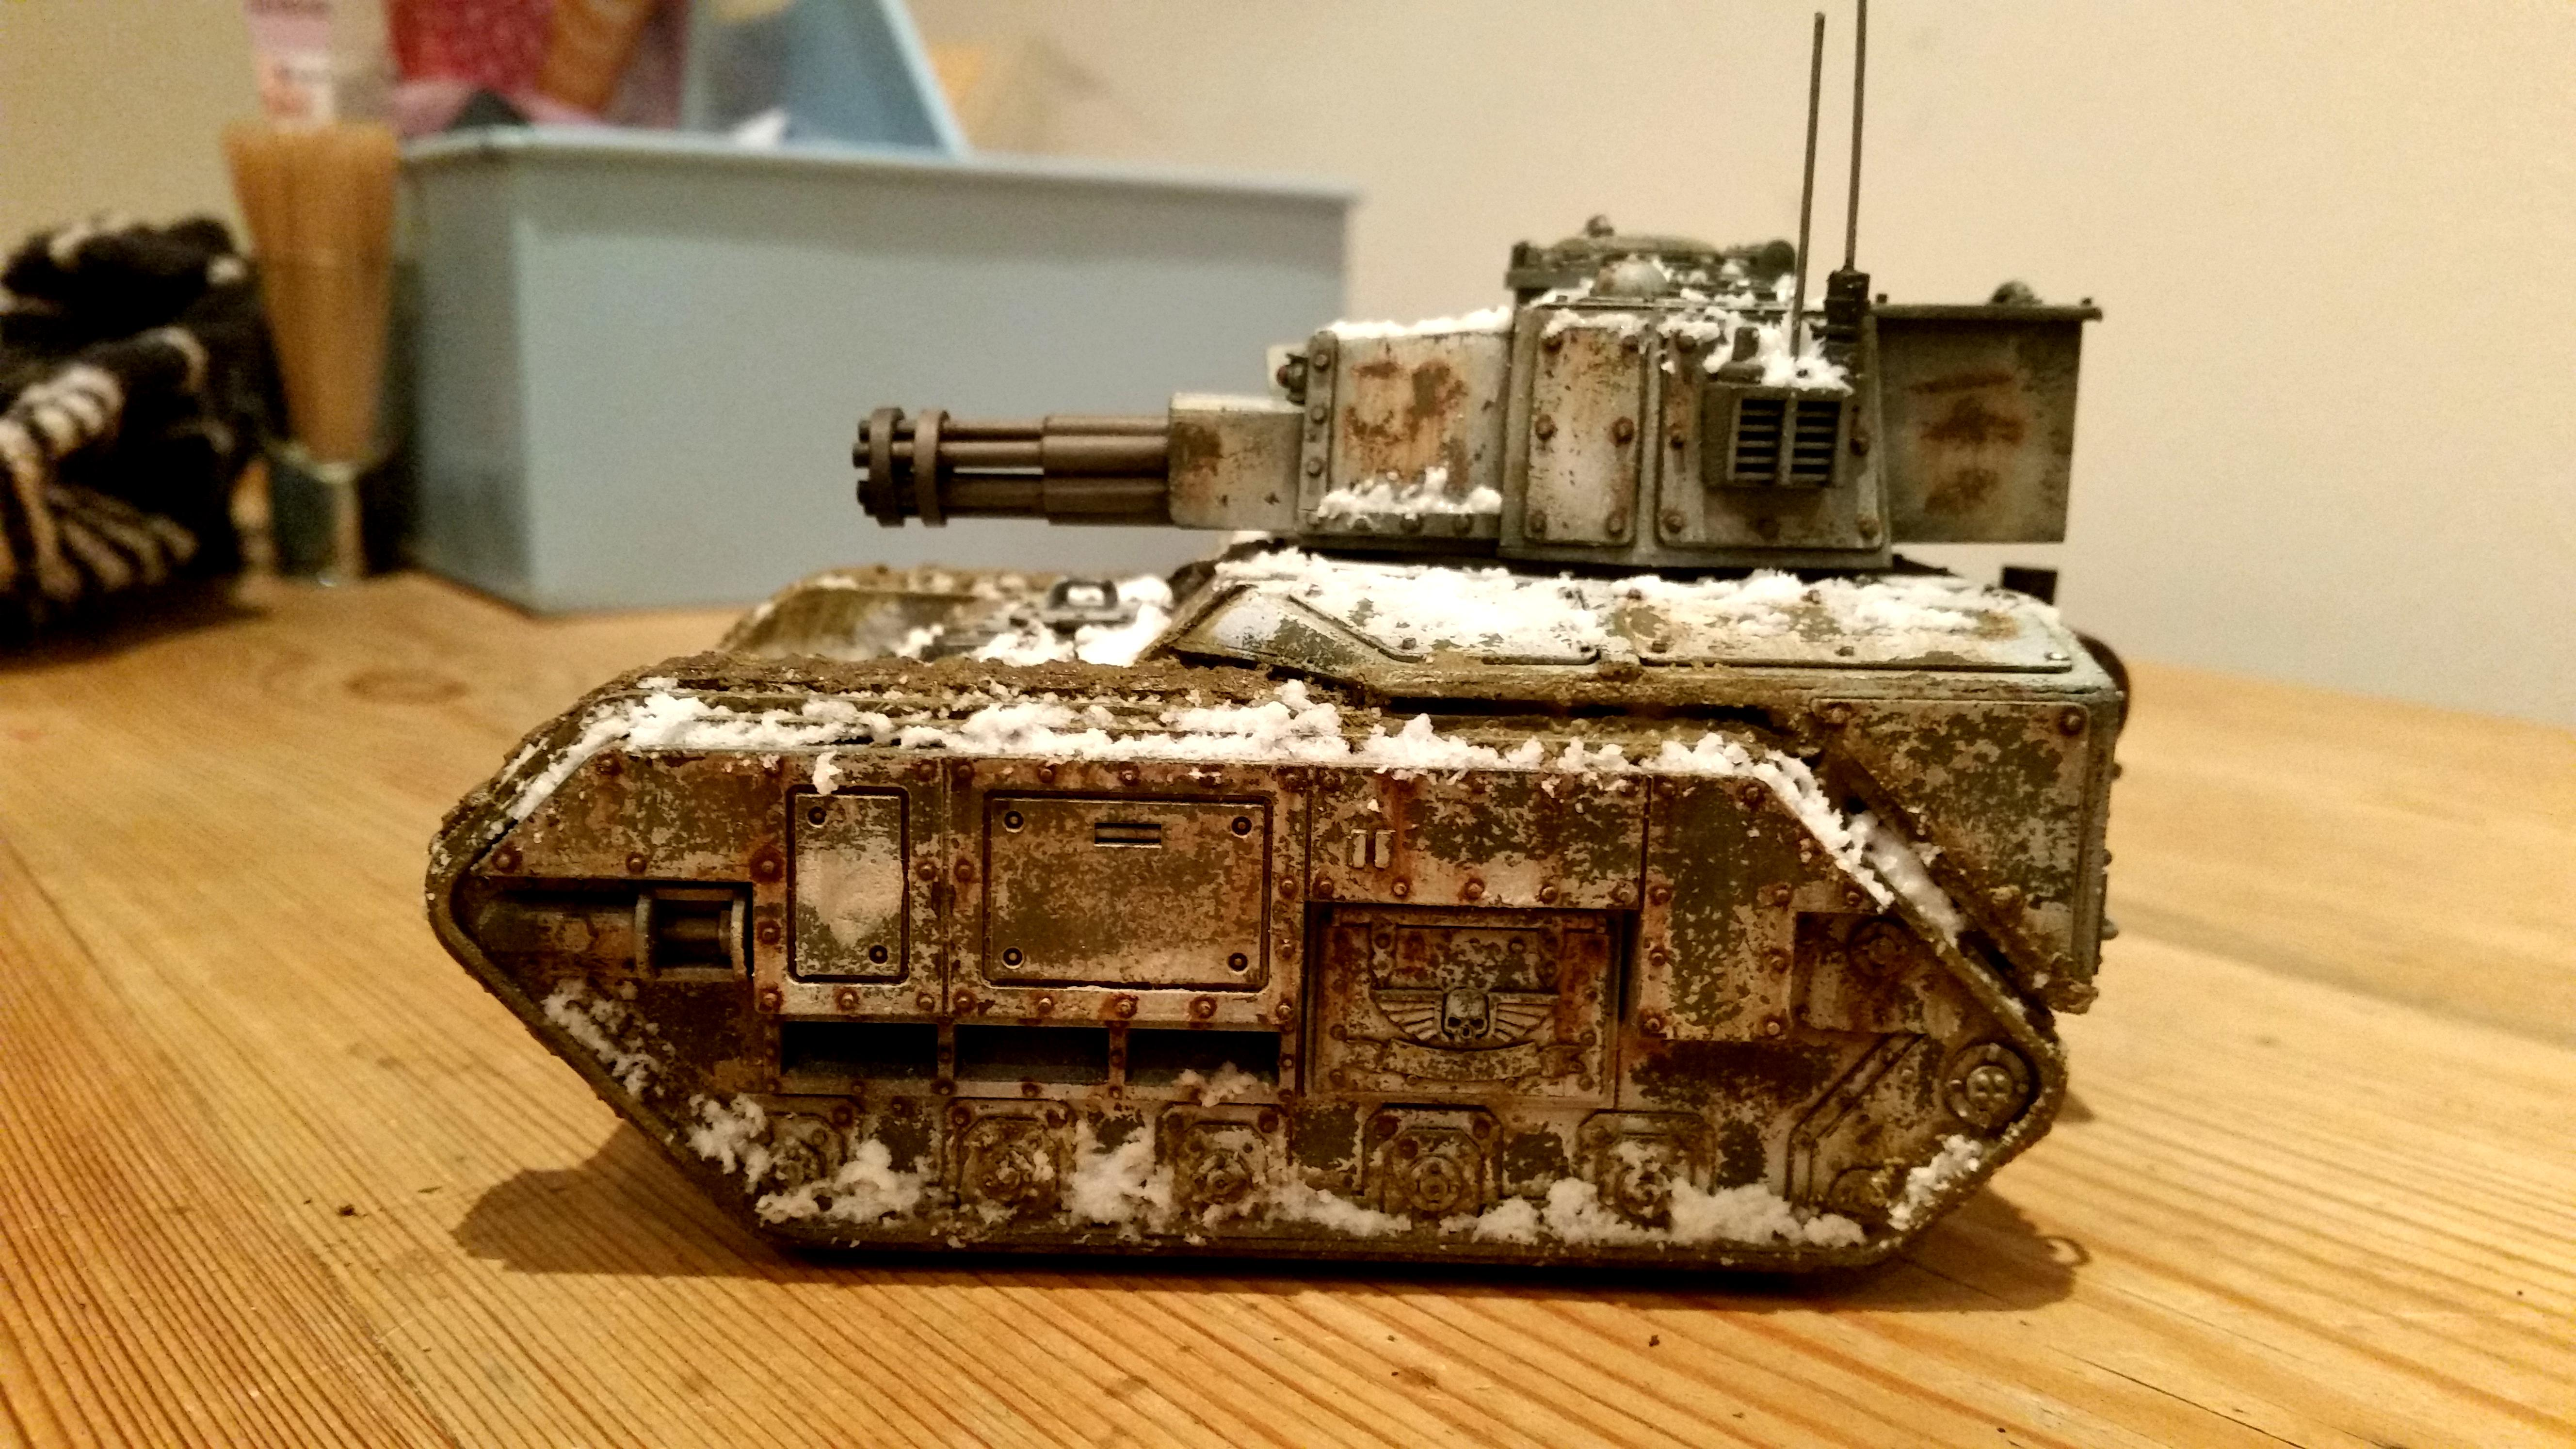 Astra Militarum, Conversion, Death Korps of Krieg, Imperial Guard, Leman Russ, Punisher